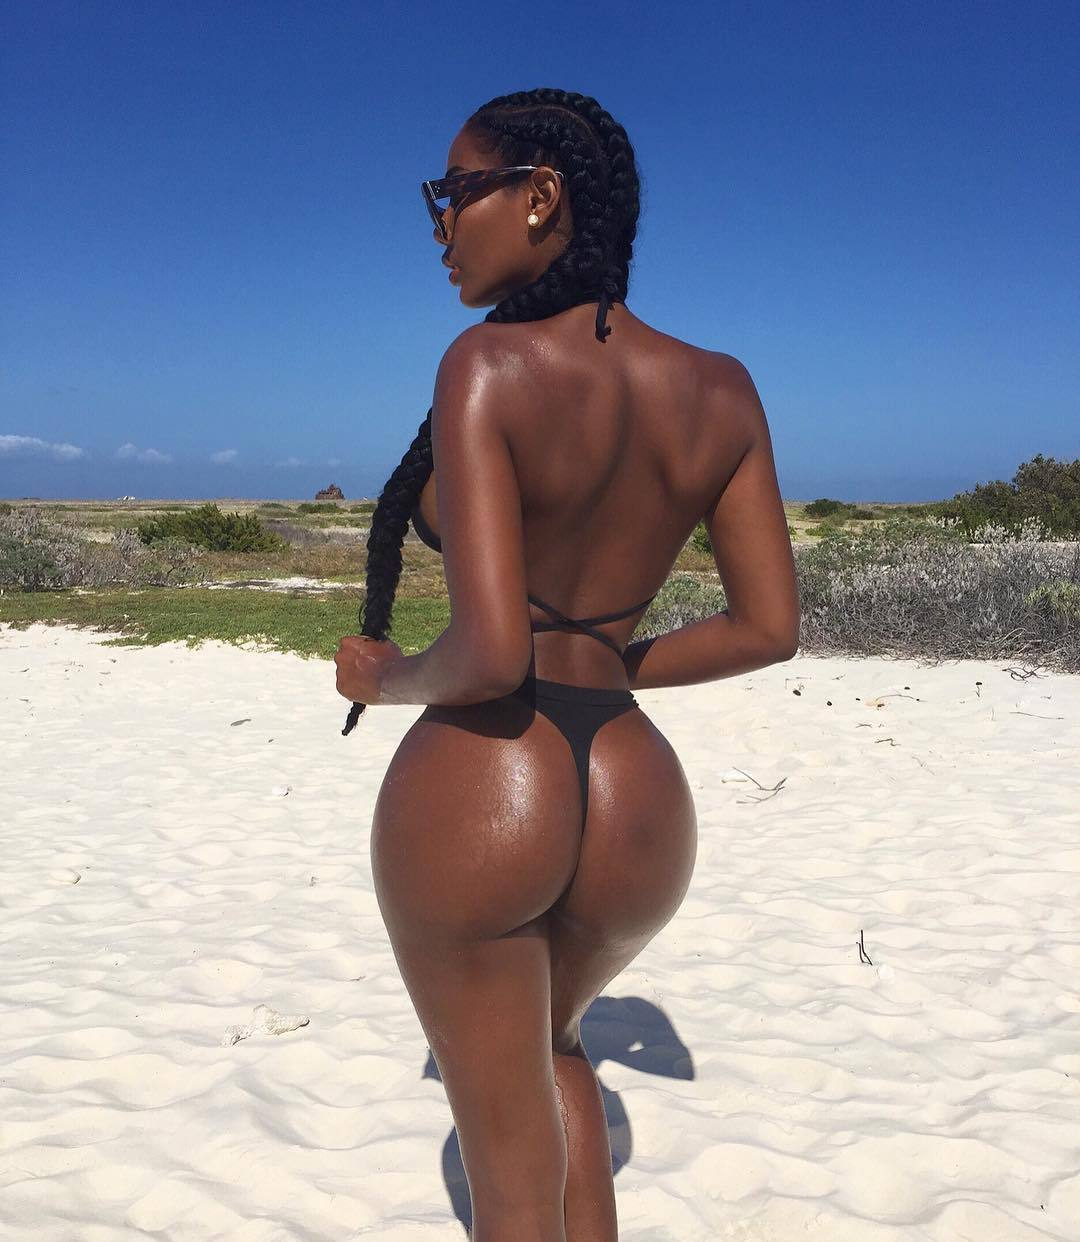 Monifa Jansen – Beautiful Boobs And Ass In Hot Instagram Pictures 0016